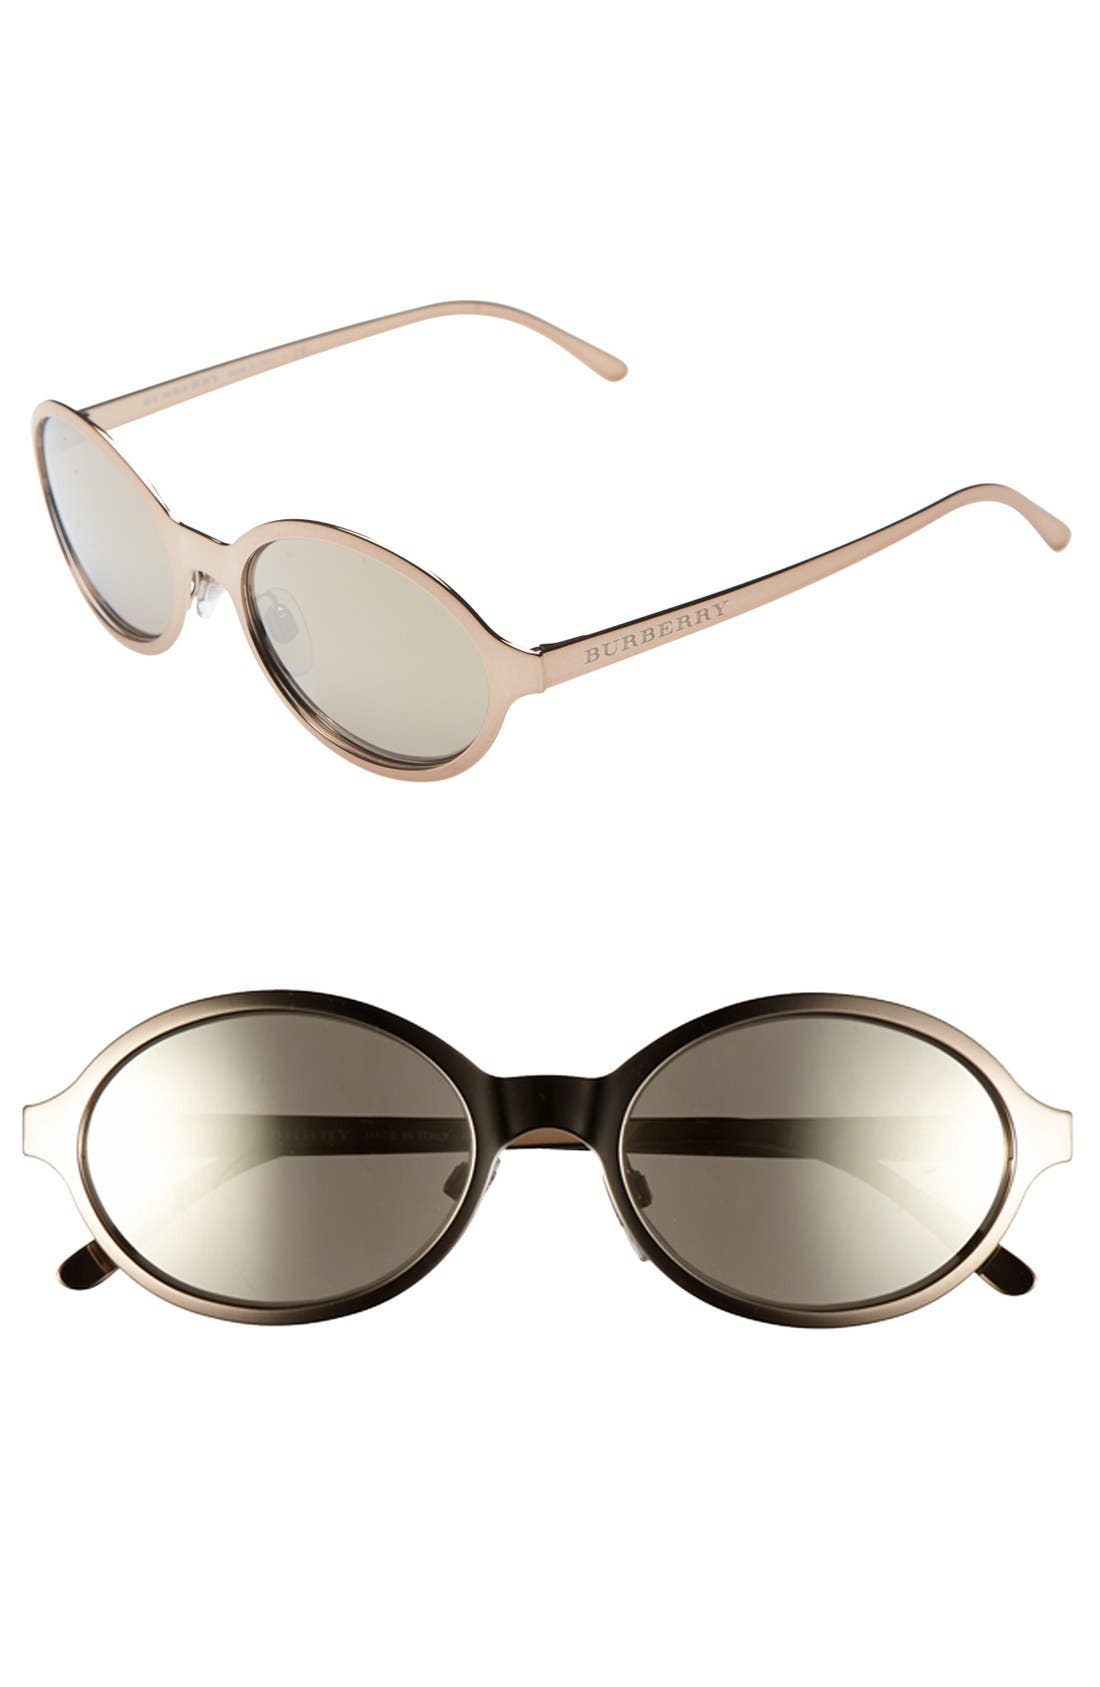 Alternate Image 1 Selected - Burberry 'Splash' 54mm Sunglasses